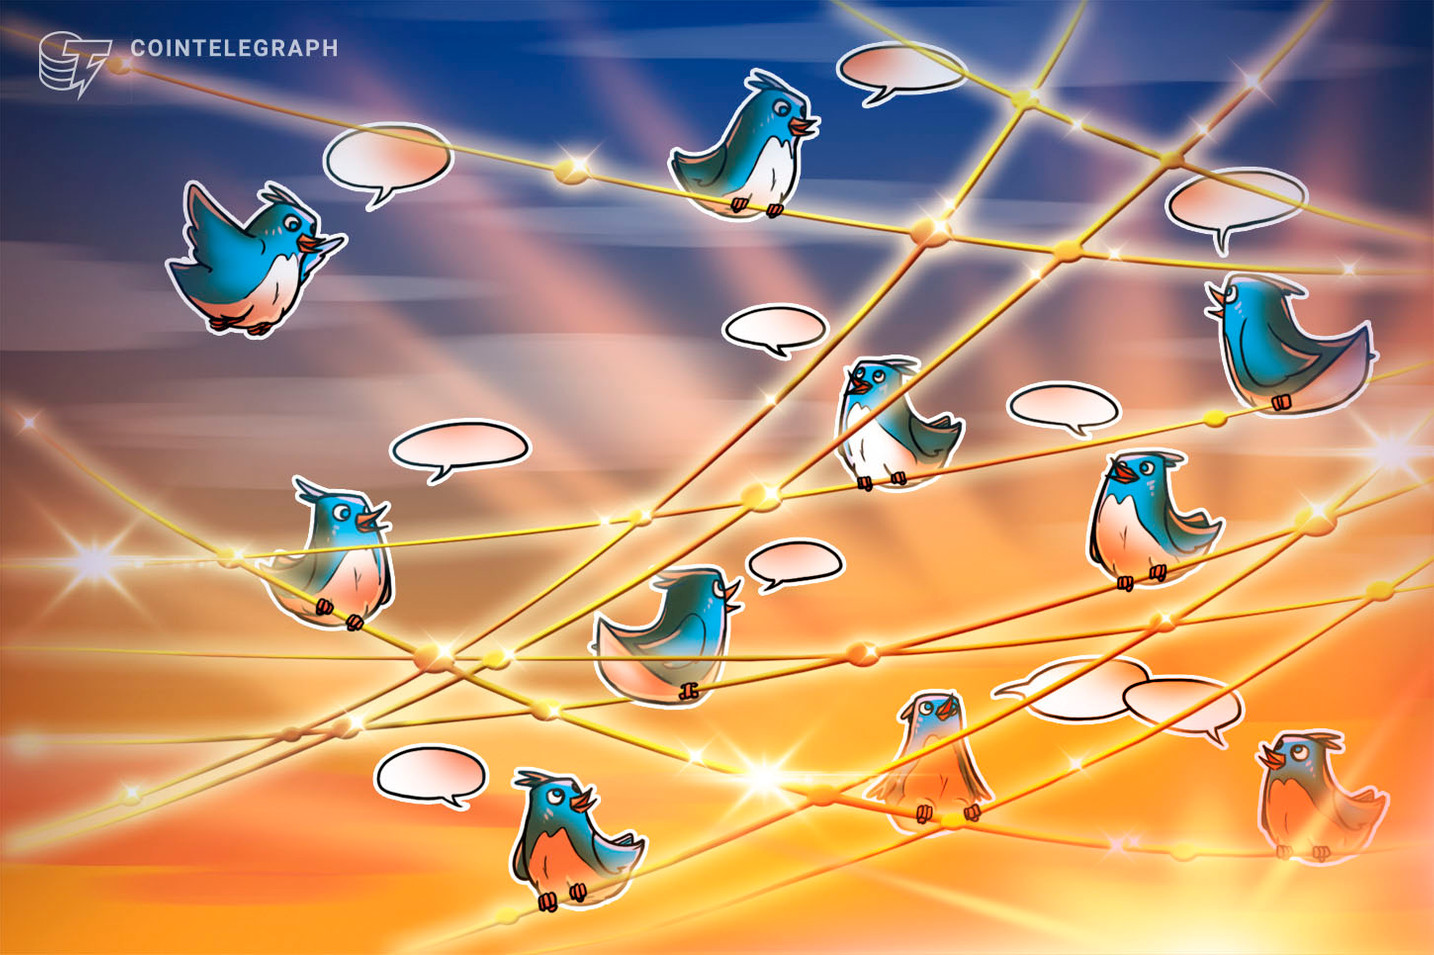 What Does Twitter's New Decentralized Initiative Mean?